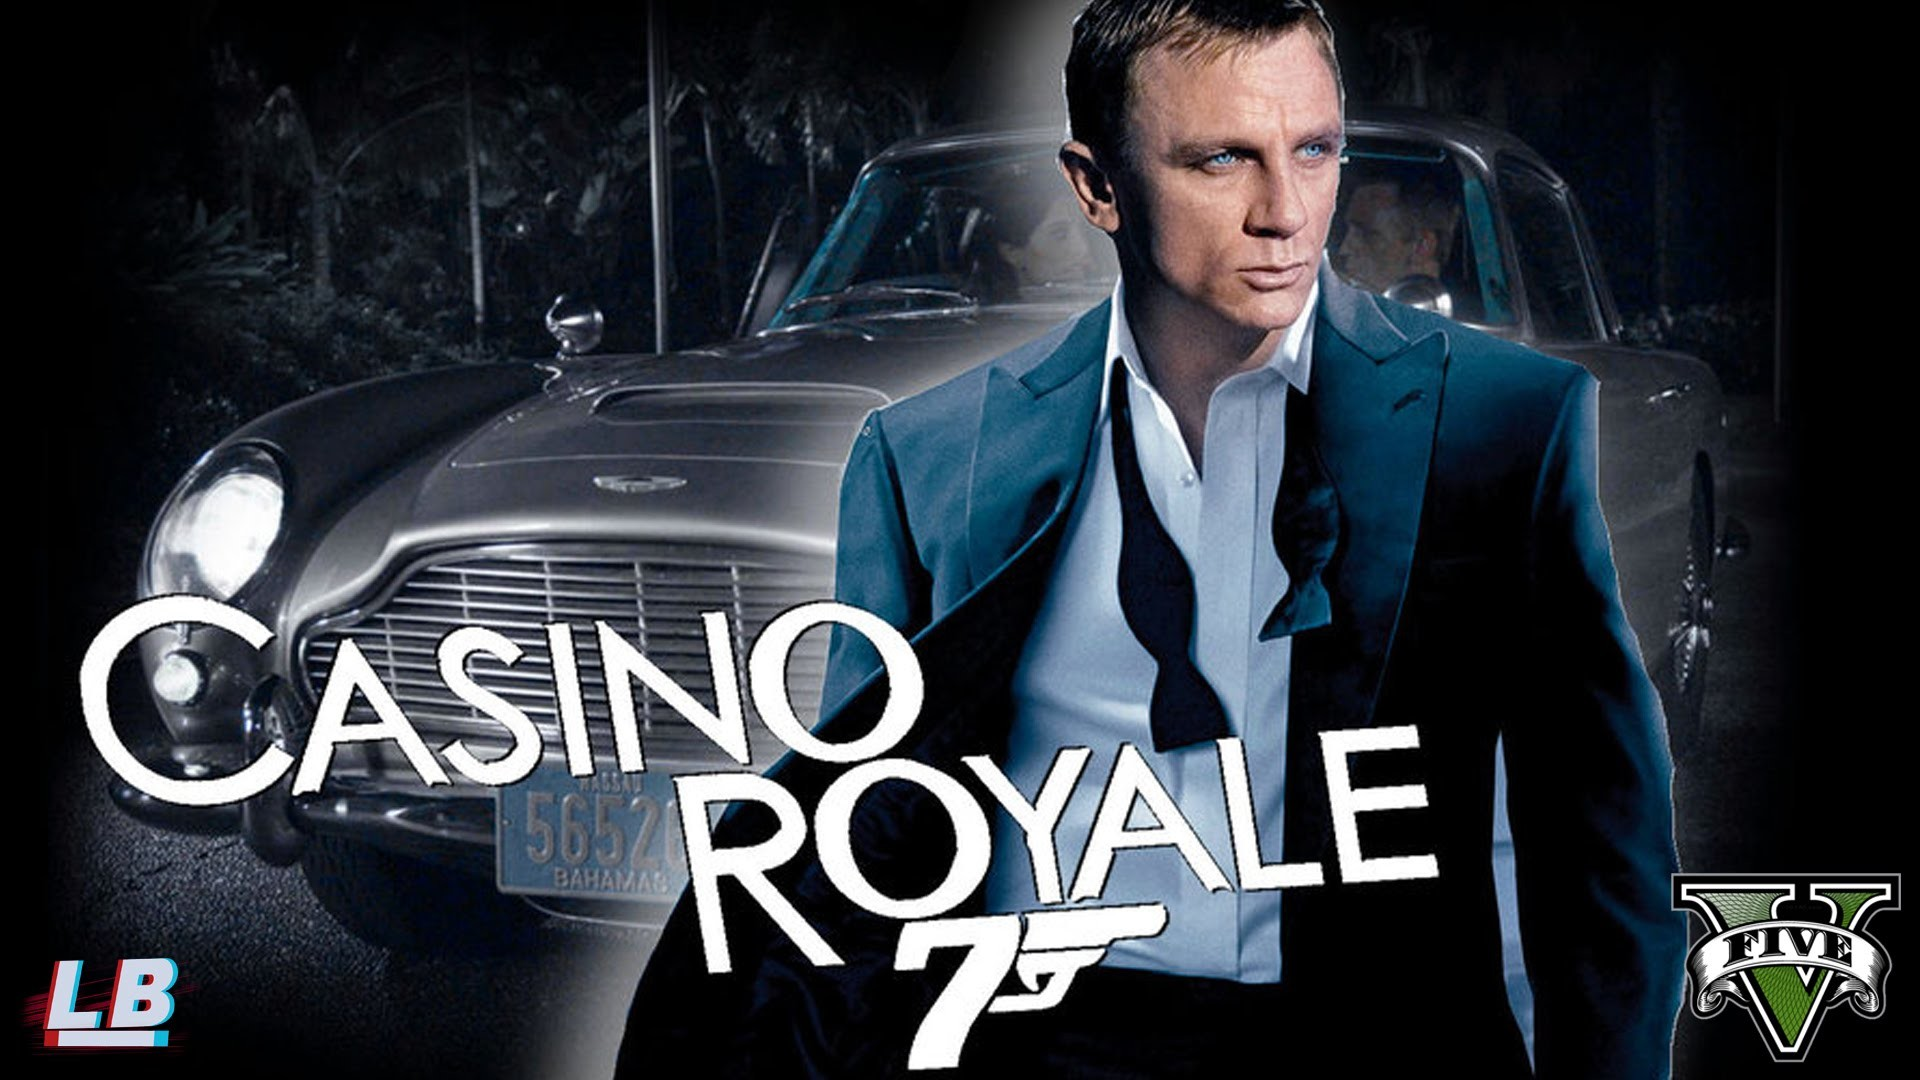 download gta casino royale 007